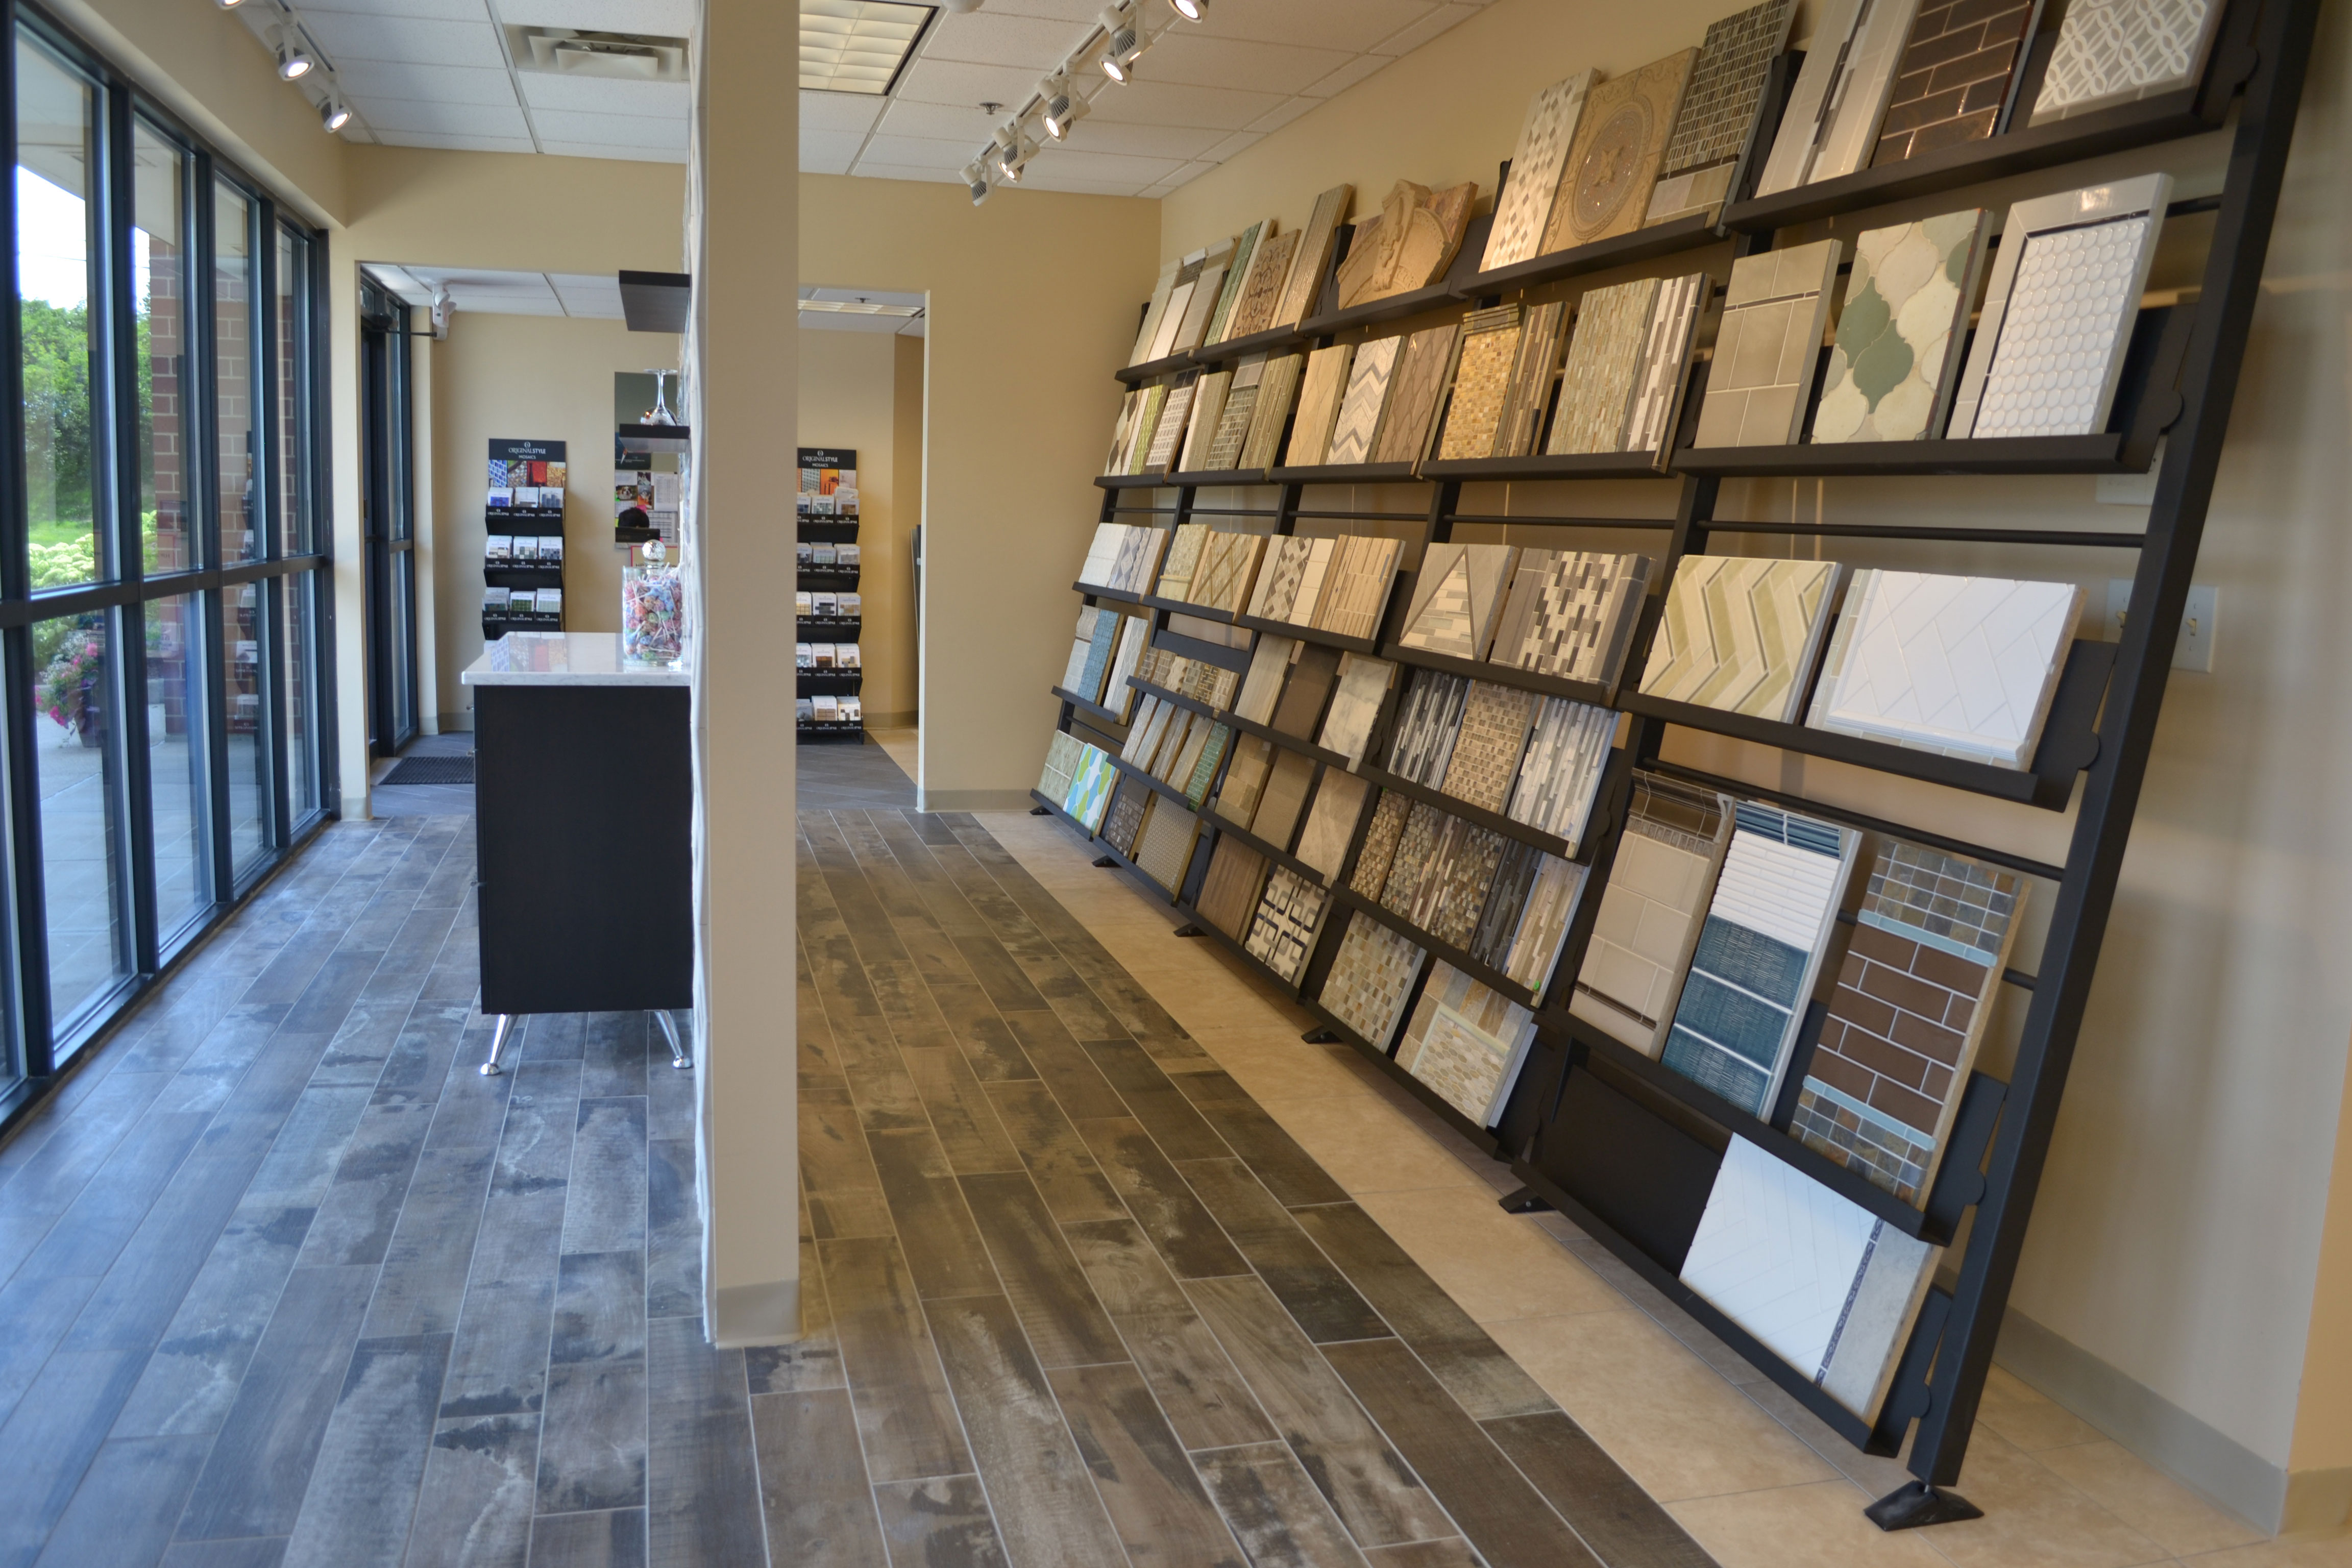 Hamilton Parker The Hamilton Parker Company® Opens A New Tile Showroom In